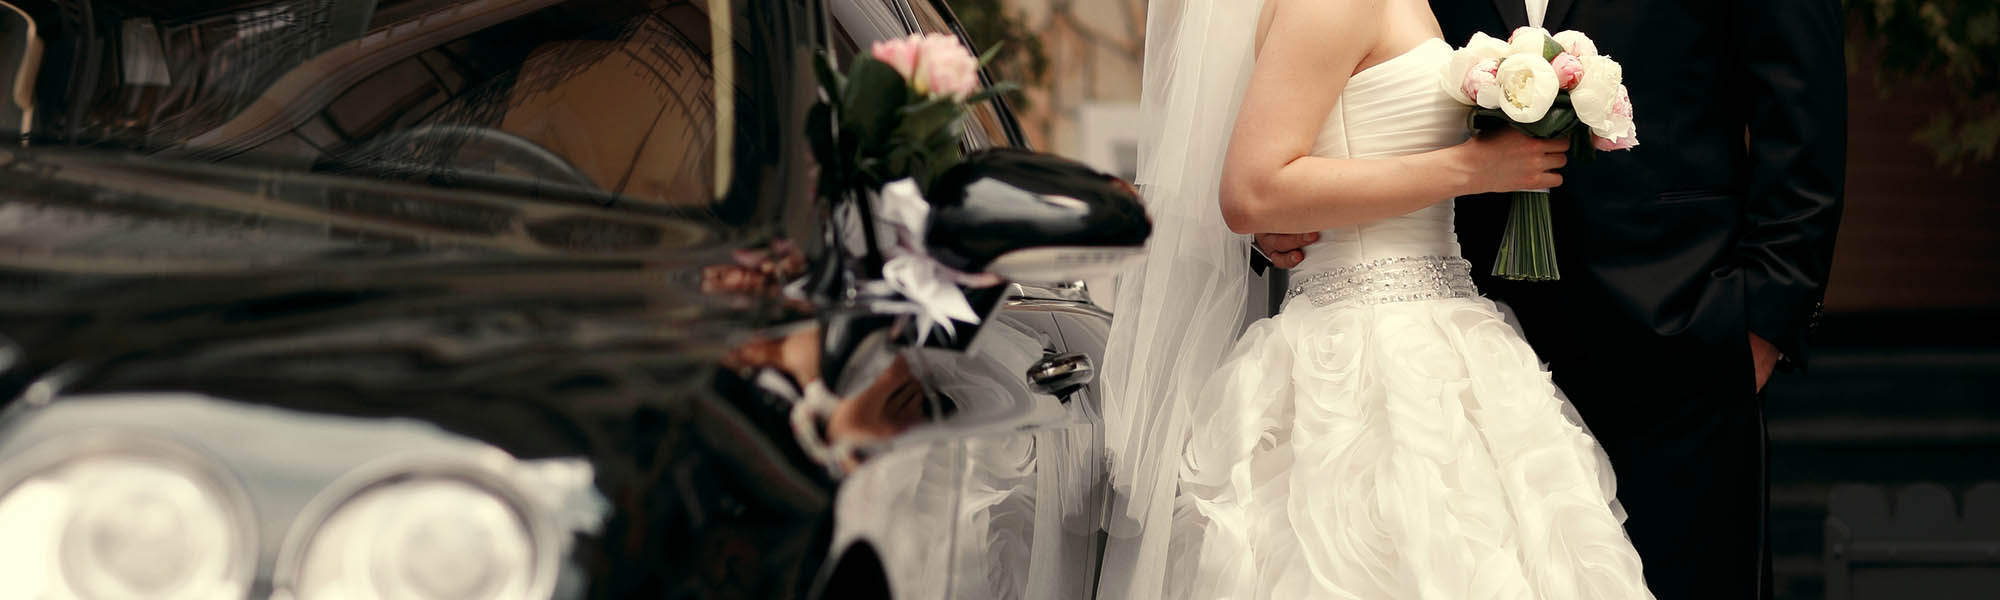 Wedding Car Hire Packages